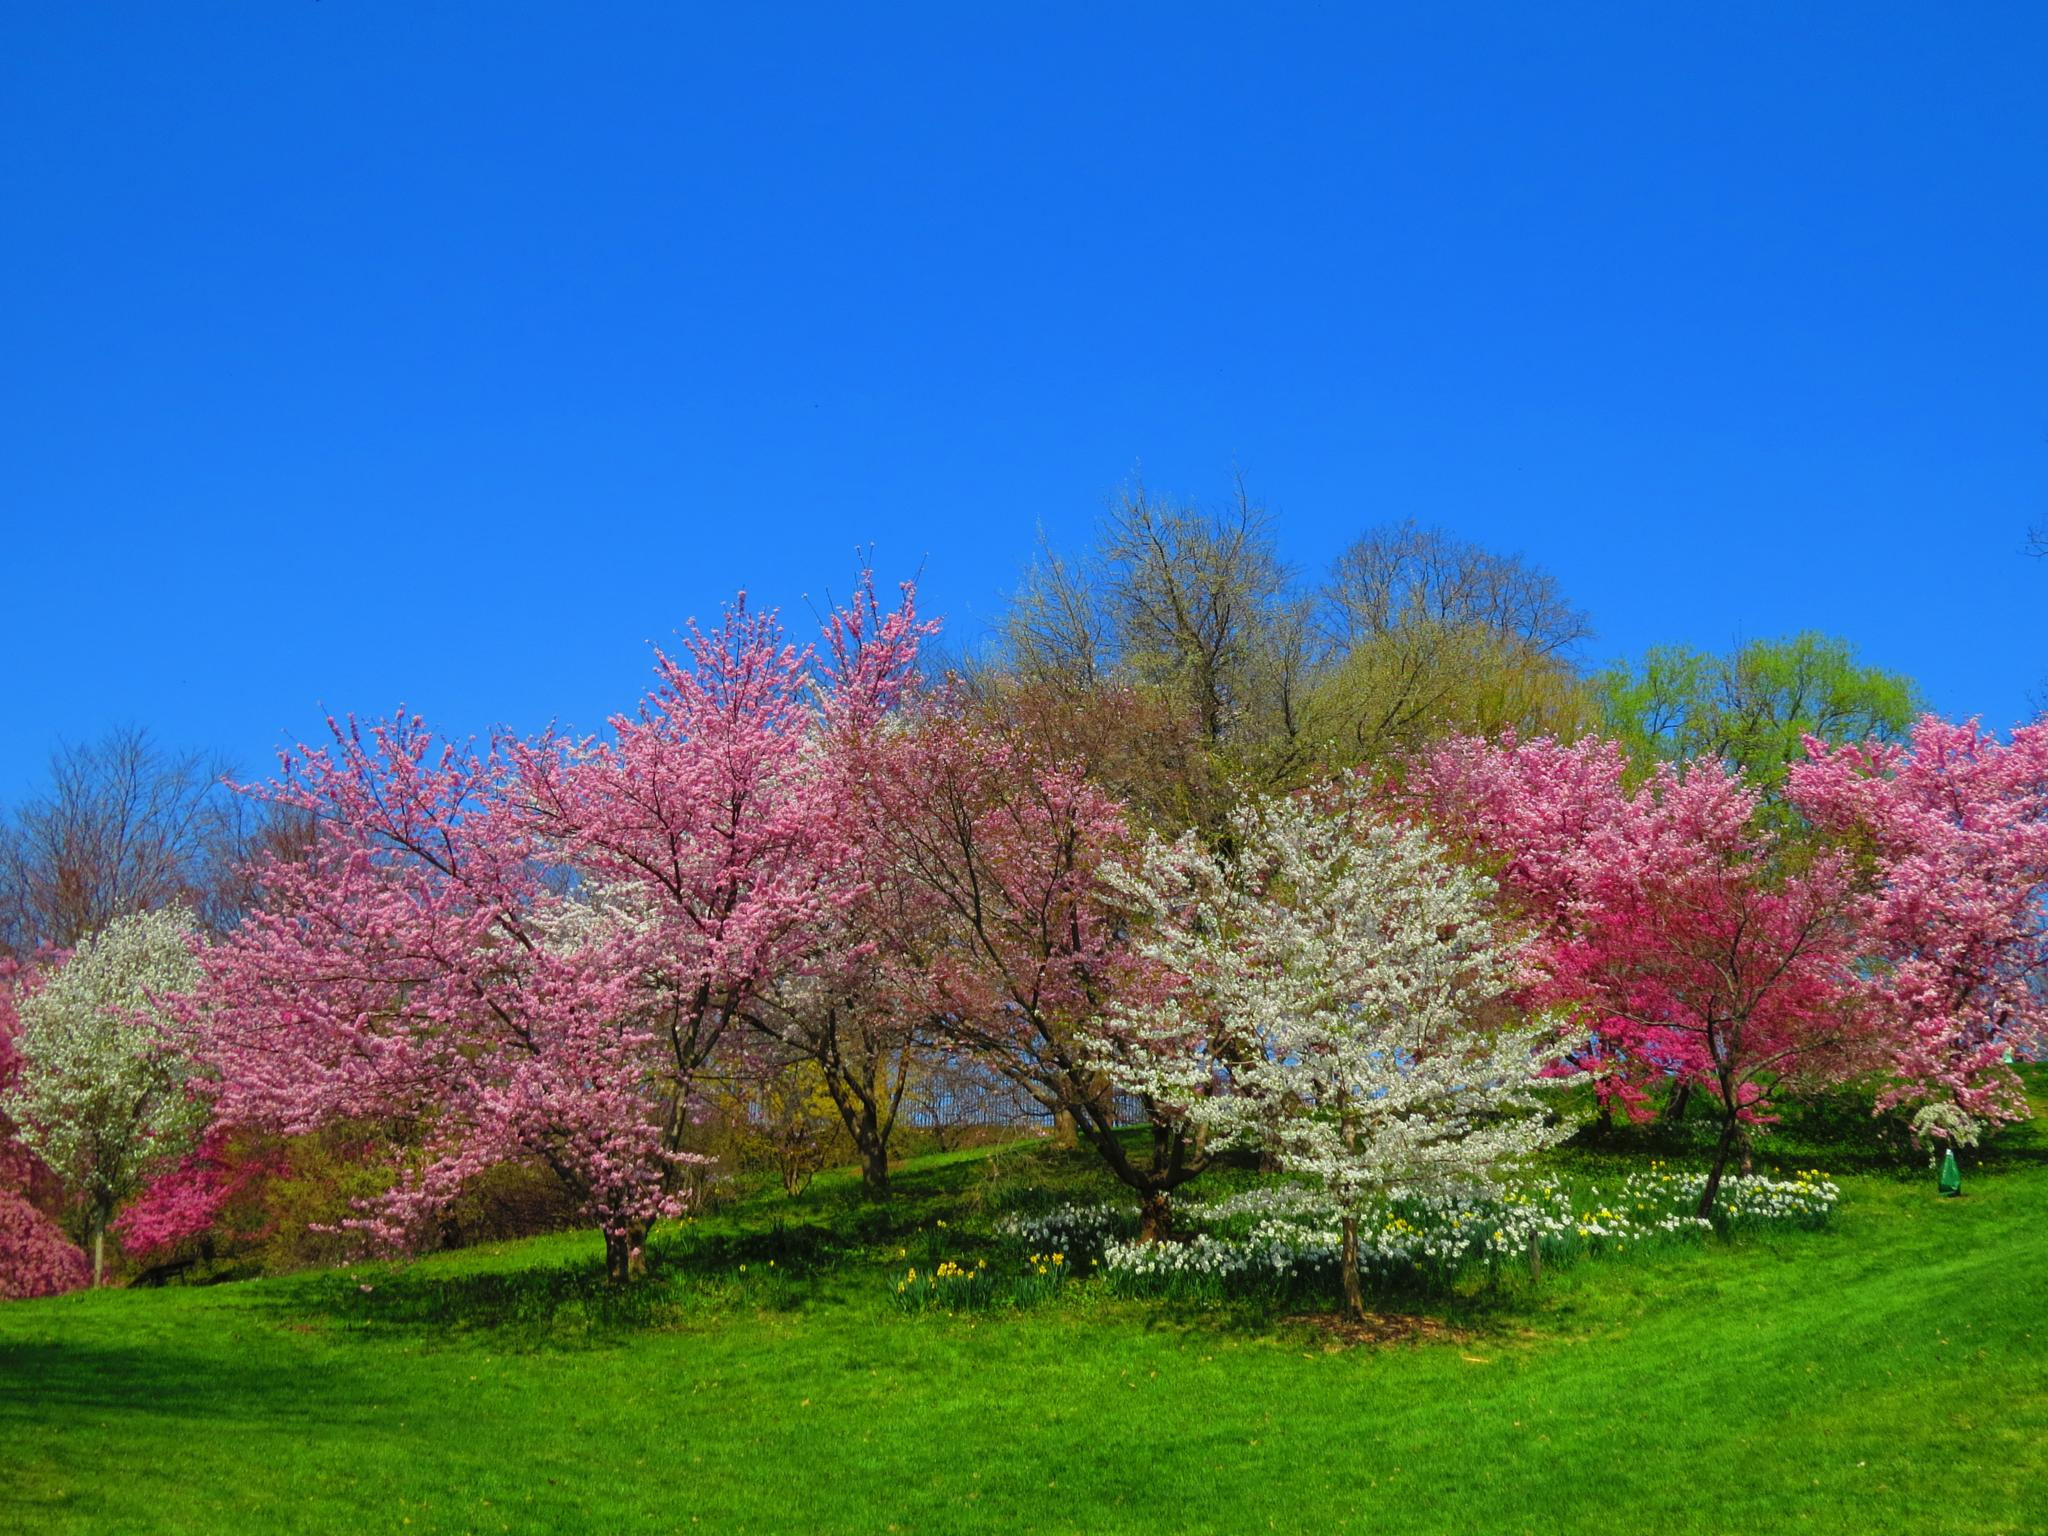 Highland Park in bloom by sweiland